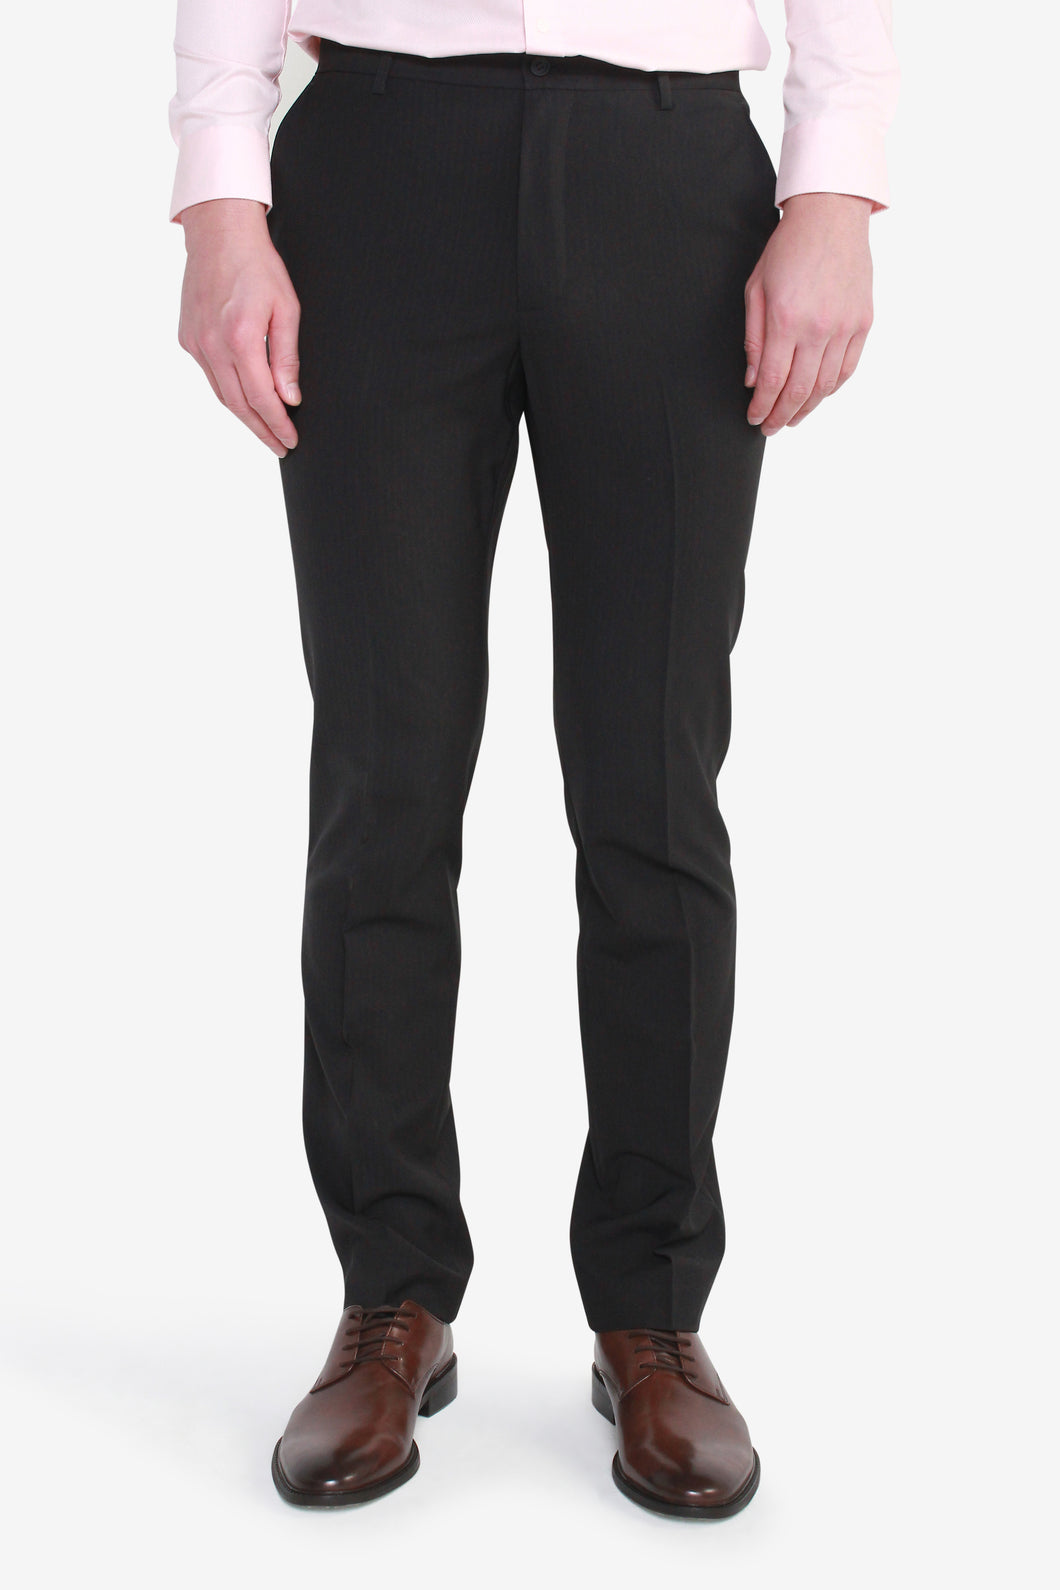 Reg Fit Black Polyester Textured Pants